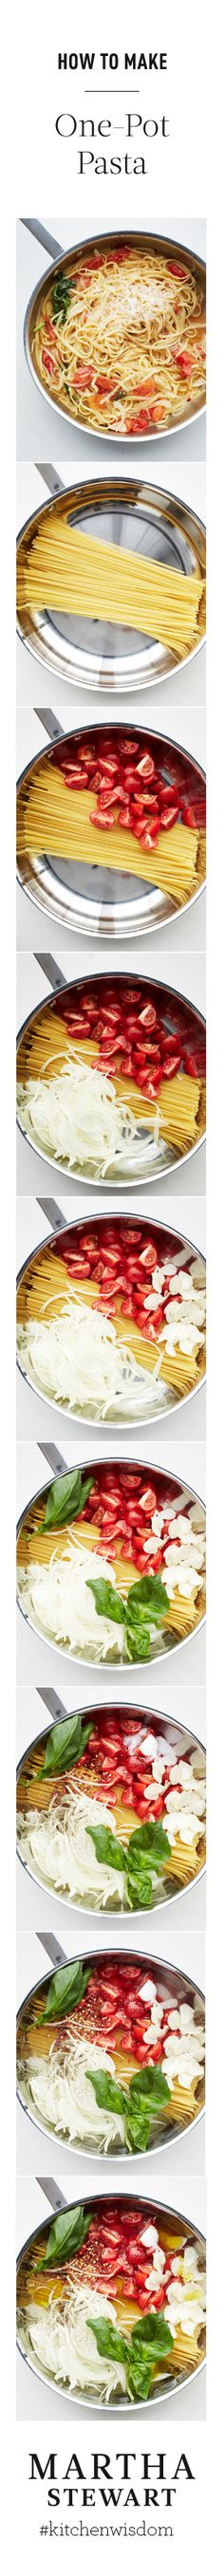 The only one-pot pasta recipe you'll ever need!